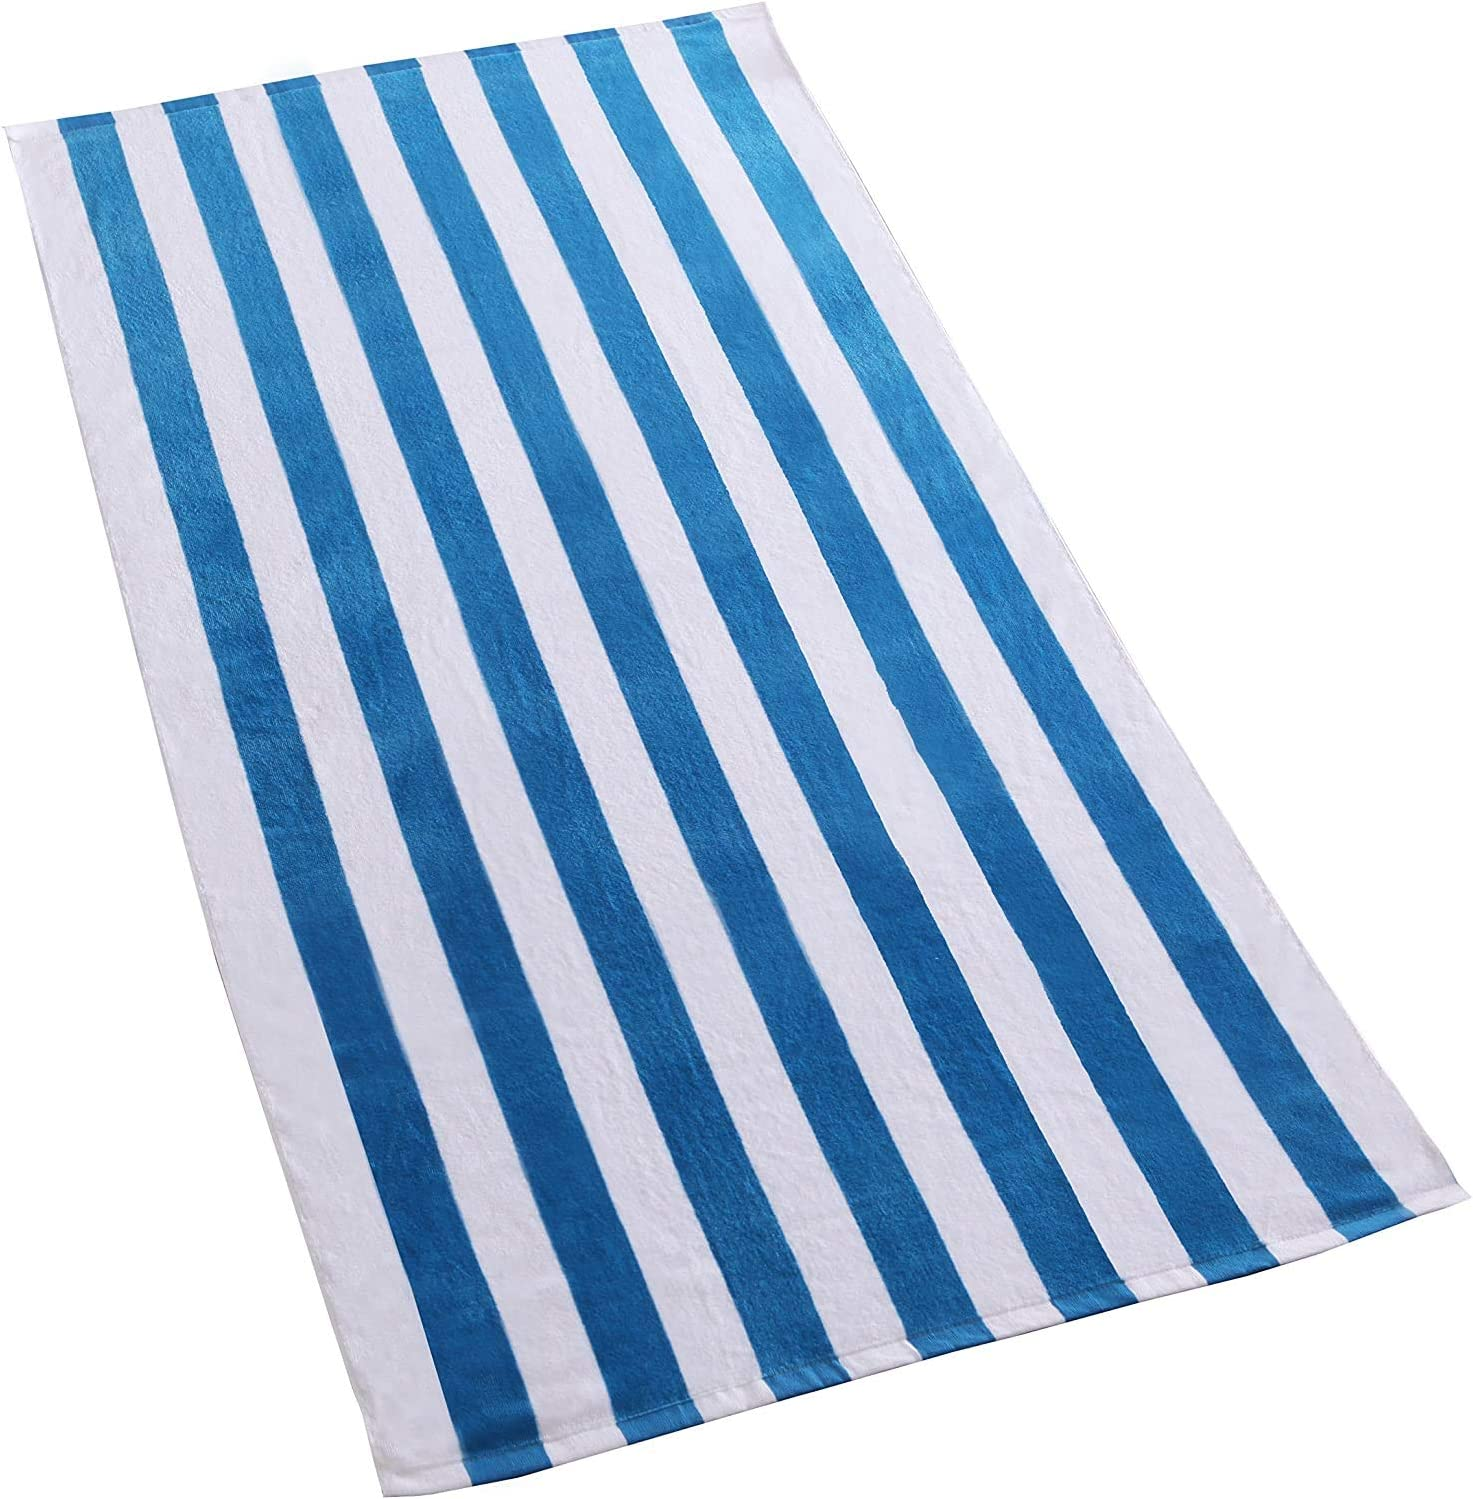 30 x 60 /—Soft Exclusivo Mezcla 2-Pack 100/% Cotton Cabana Blue Striped Beach//Pool//Bath Towel Quick Dry Lightweight Absorbent and Plush